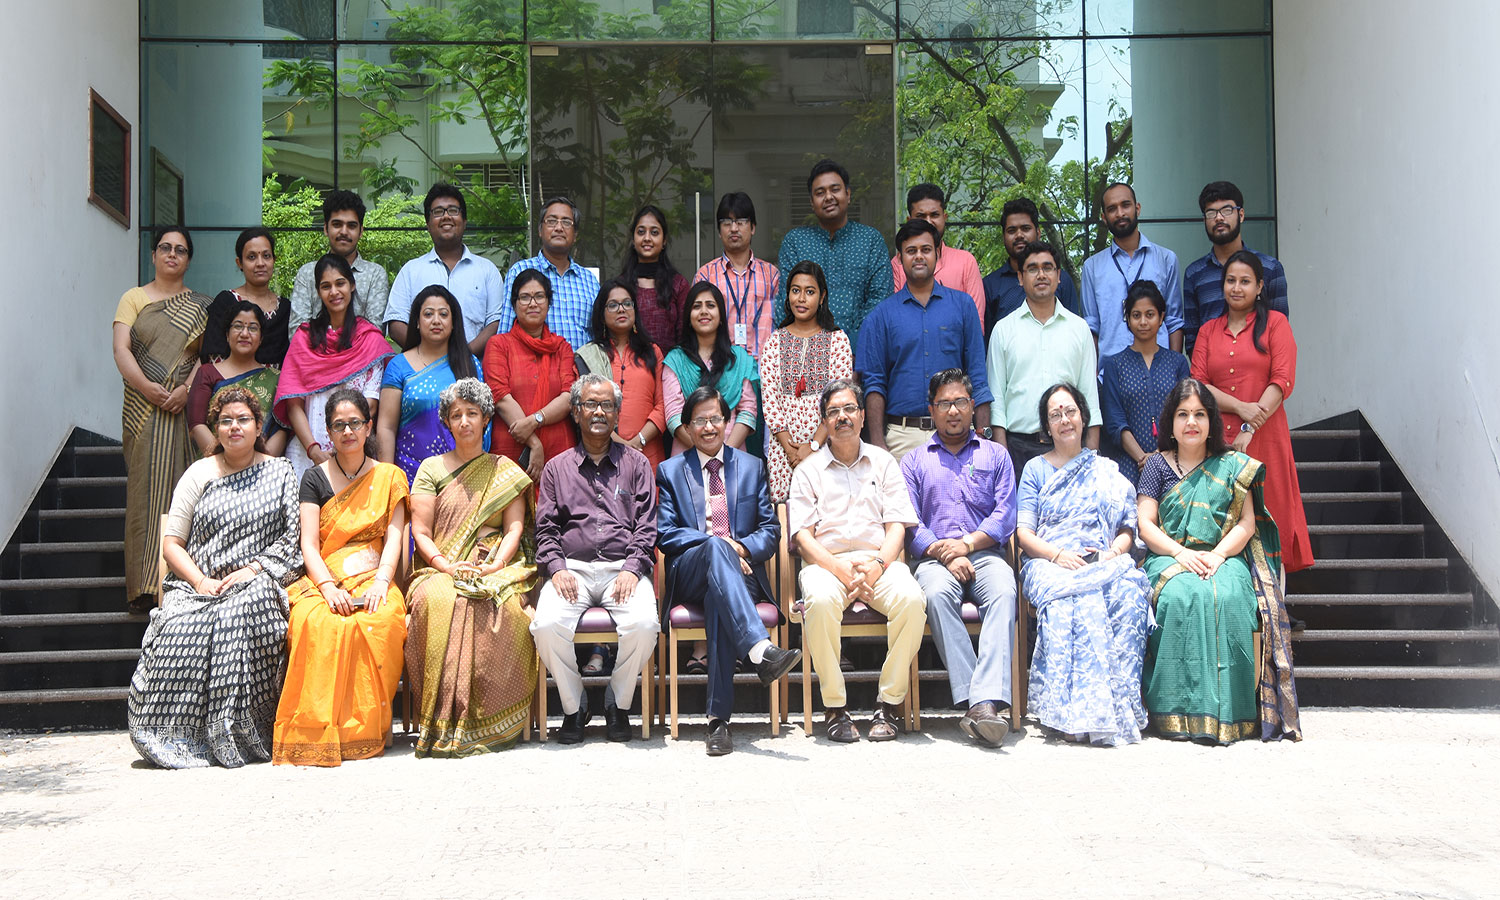 Faculties & Staff Group Photo